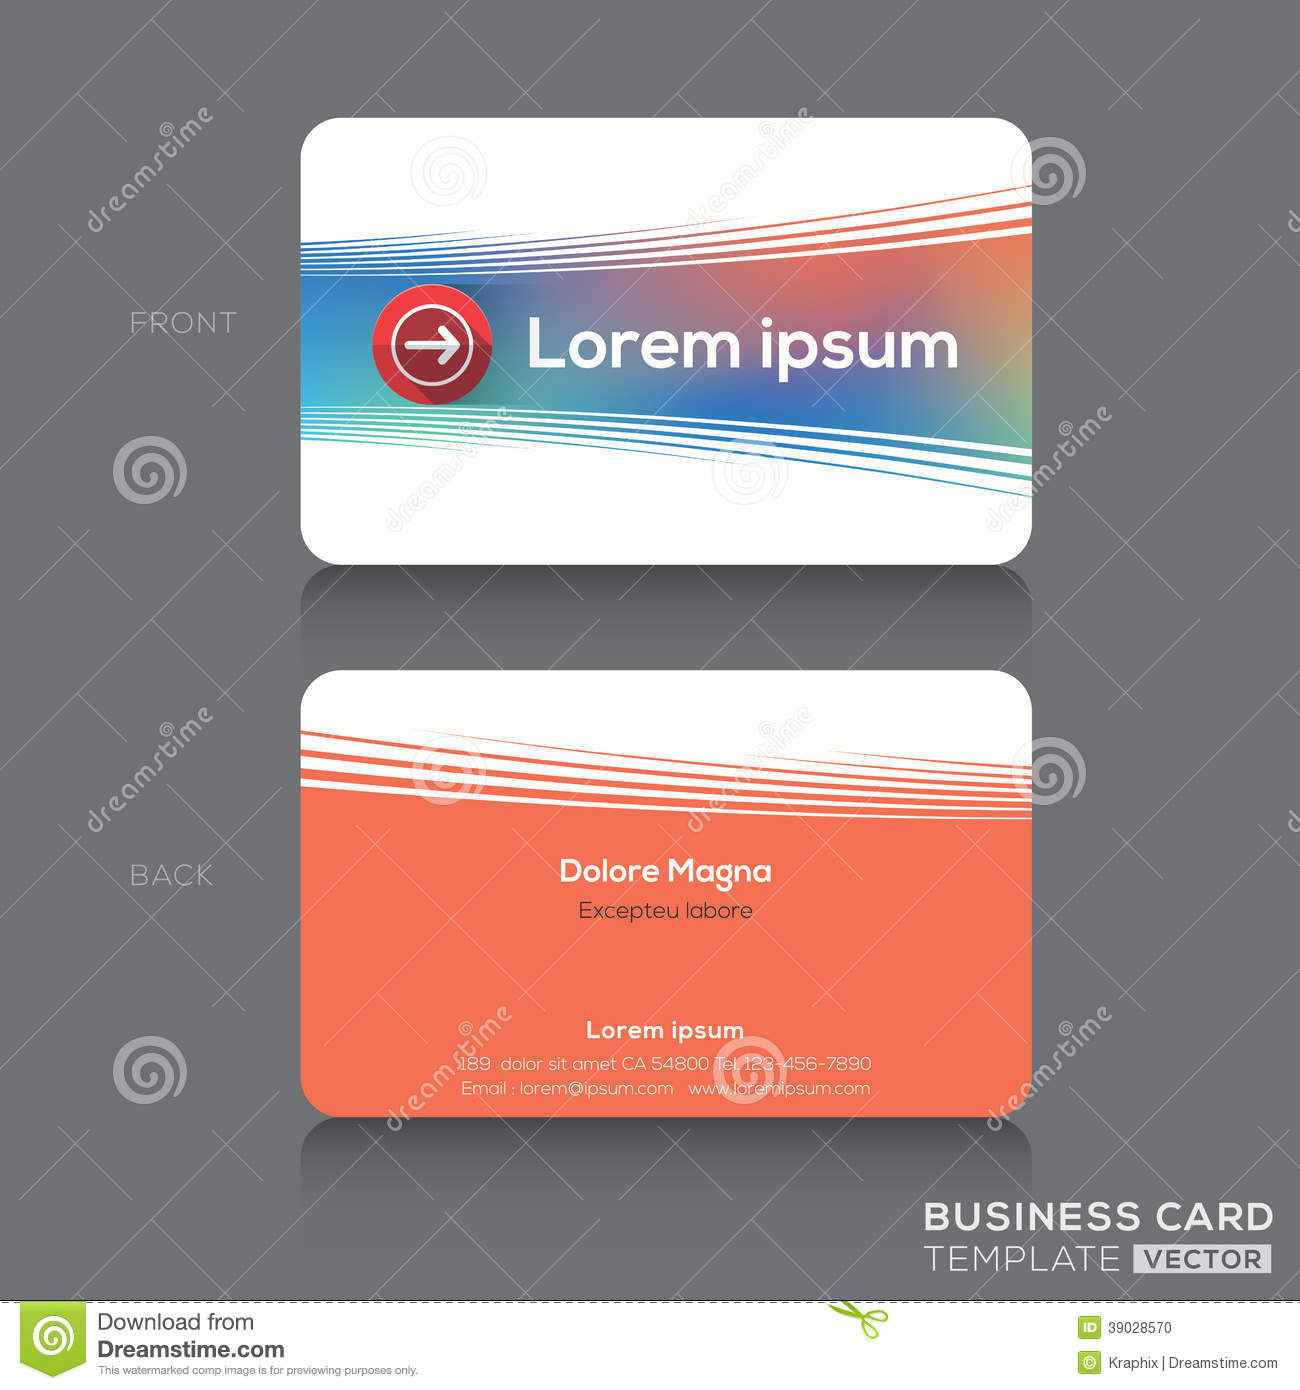 Business Cards Name Card Design Template Stock Vector - Image ...